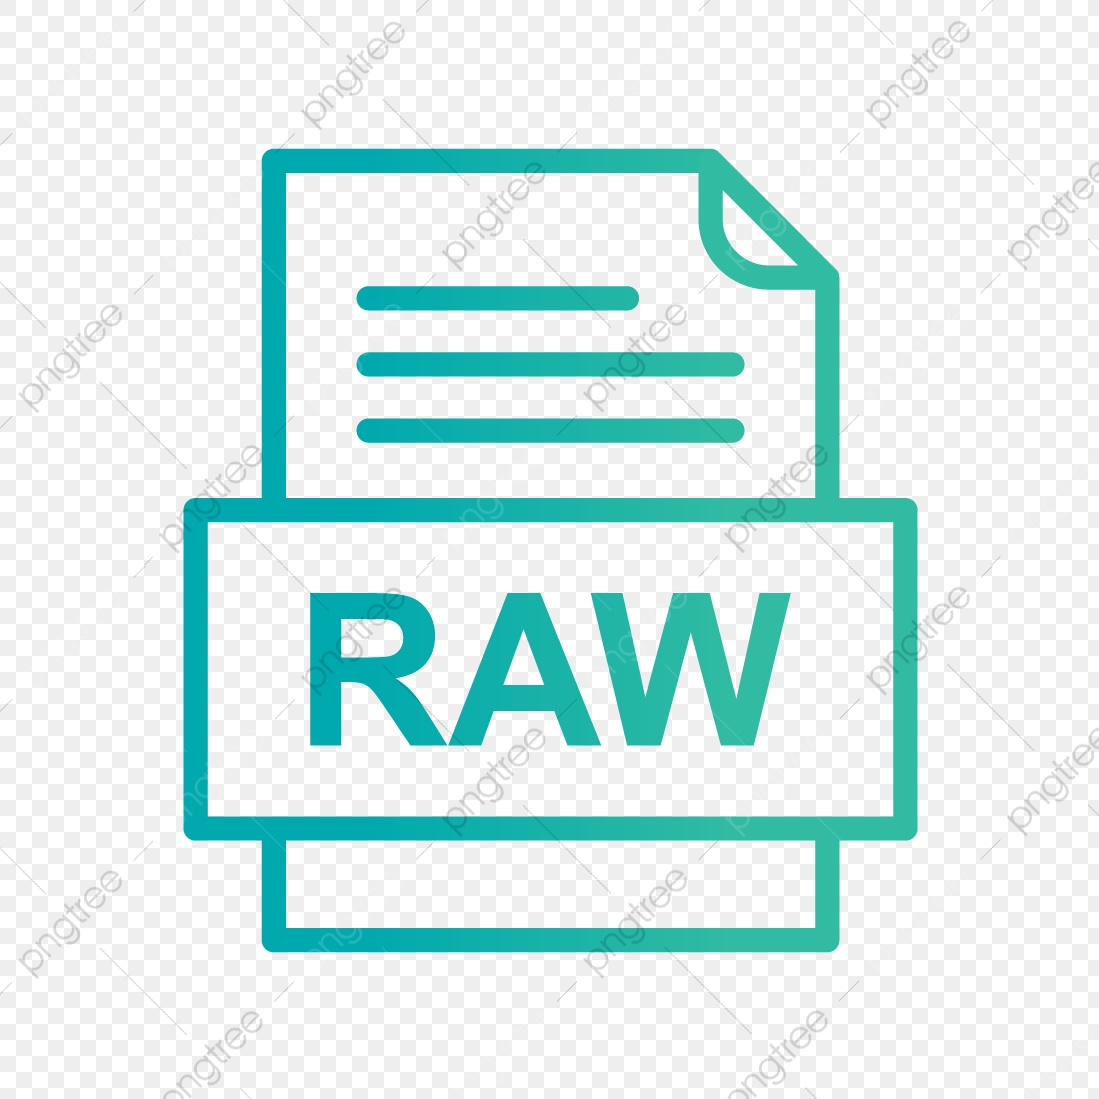 RAW File Document Icon, Raw, Document, File PNG and Vector with